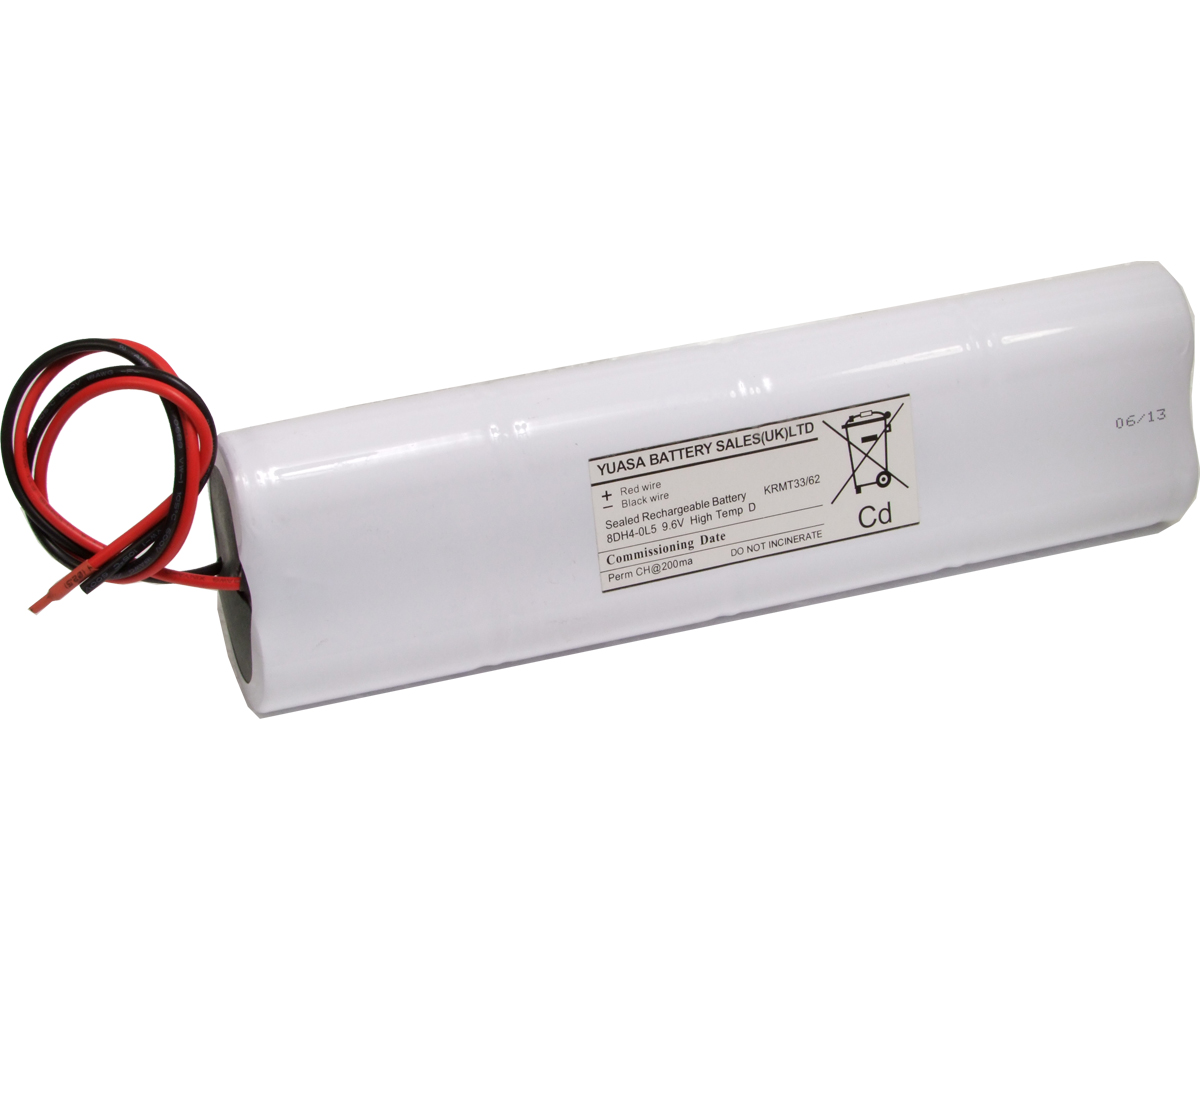 Yuasa 8DH4.0L5 Emergency Lighting Battery